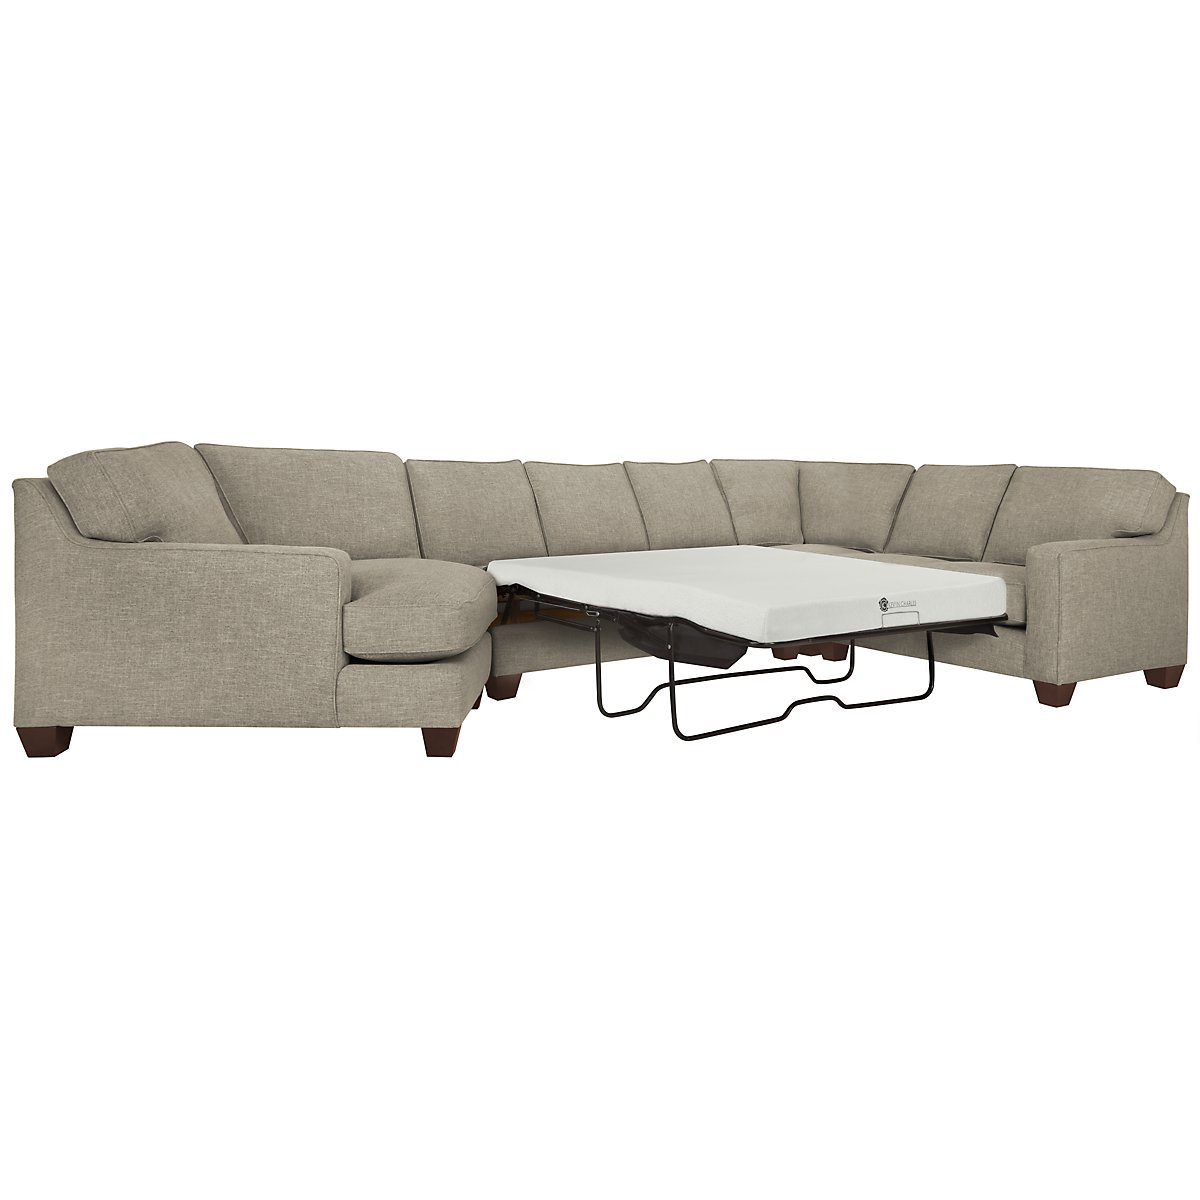 York Pewter Fabric Small Left Cuddler Memory Foam Sleeper Sectional